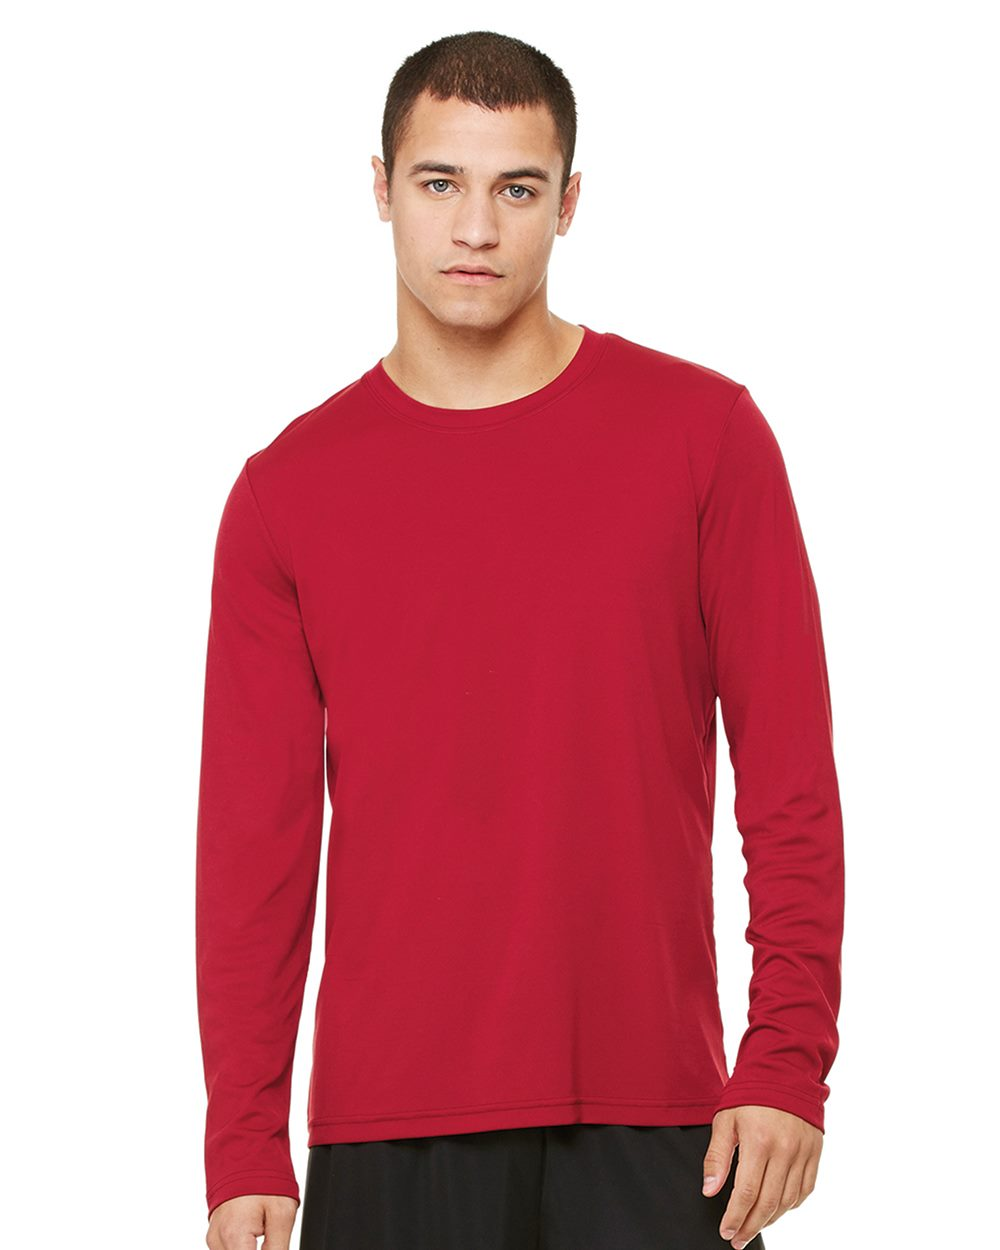 All Sport Performance Long Sleeve T-Shirt